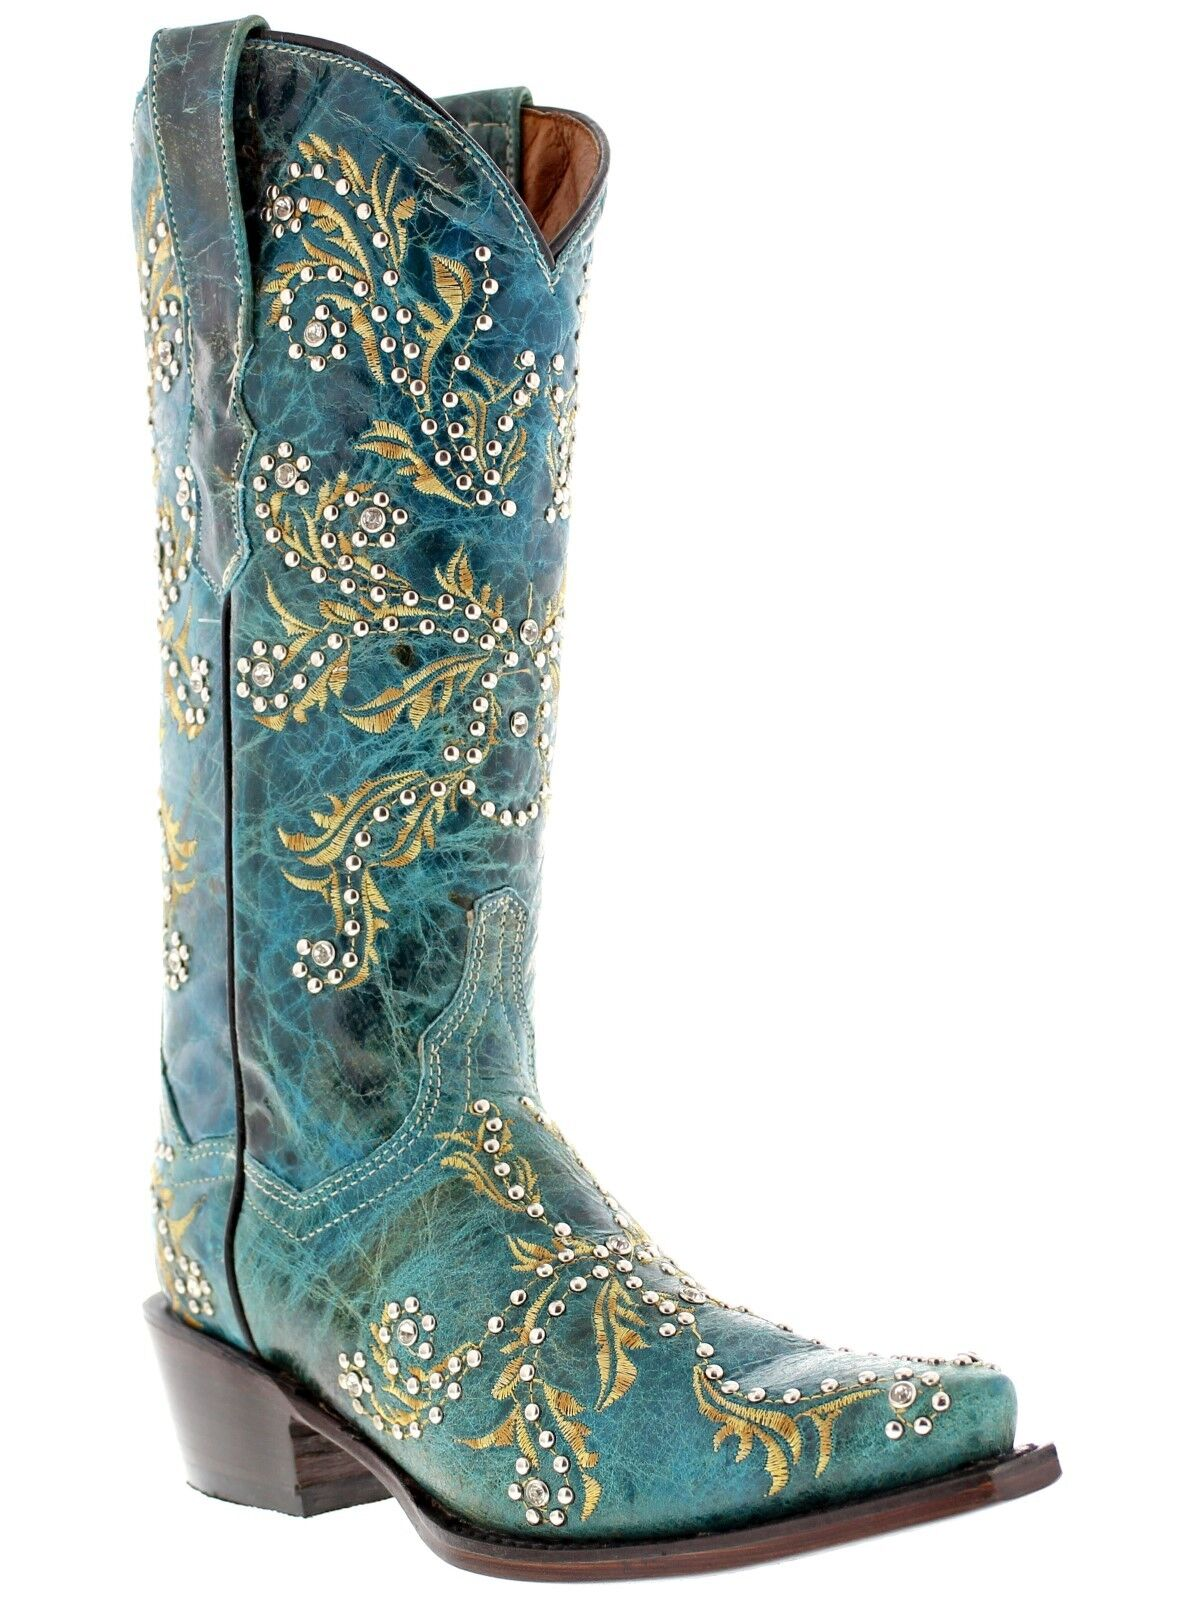 Turquoise Cowboy Boots Real Cowhide Leather Western Distress Leather Studs Snip